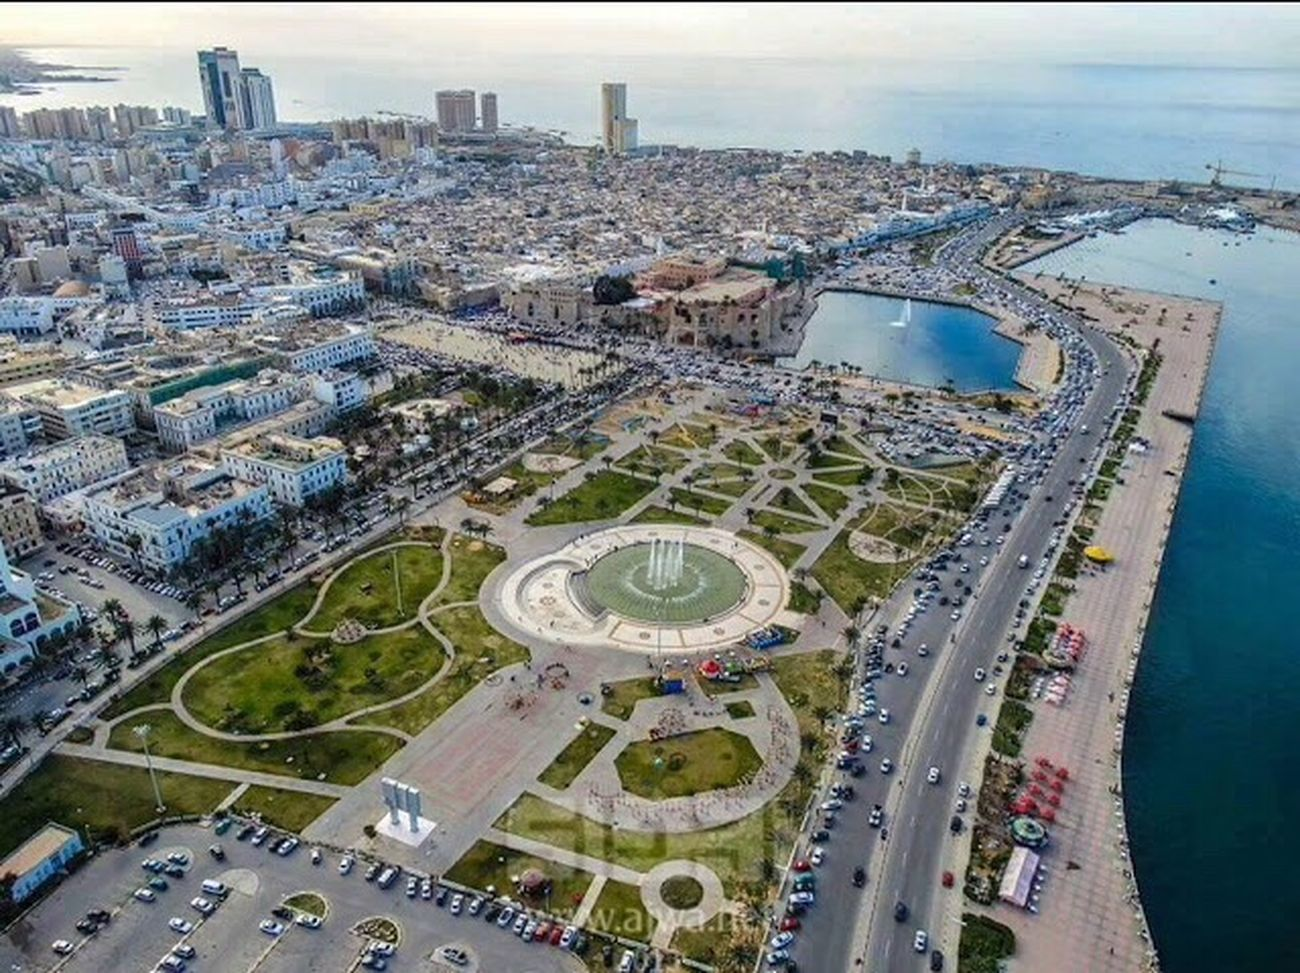 Tripoli, Libya Libya Tripoli Tripoli 🌹🌹 Tripoli Libyan _tripoli Tripoli Libya Libyan Libya Libyan Style Libya Misurata Tripoli ❤ Libya Nature  Libyan Culture Libya Skater Park Parking Parks Tripoli Beach 😍 TripoliLB Tripoli Streert Libya Nature  Libya ✌❤ Sea Towerview Towers View Nature Springtime